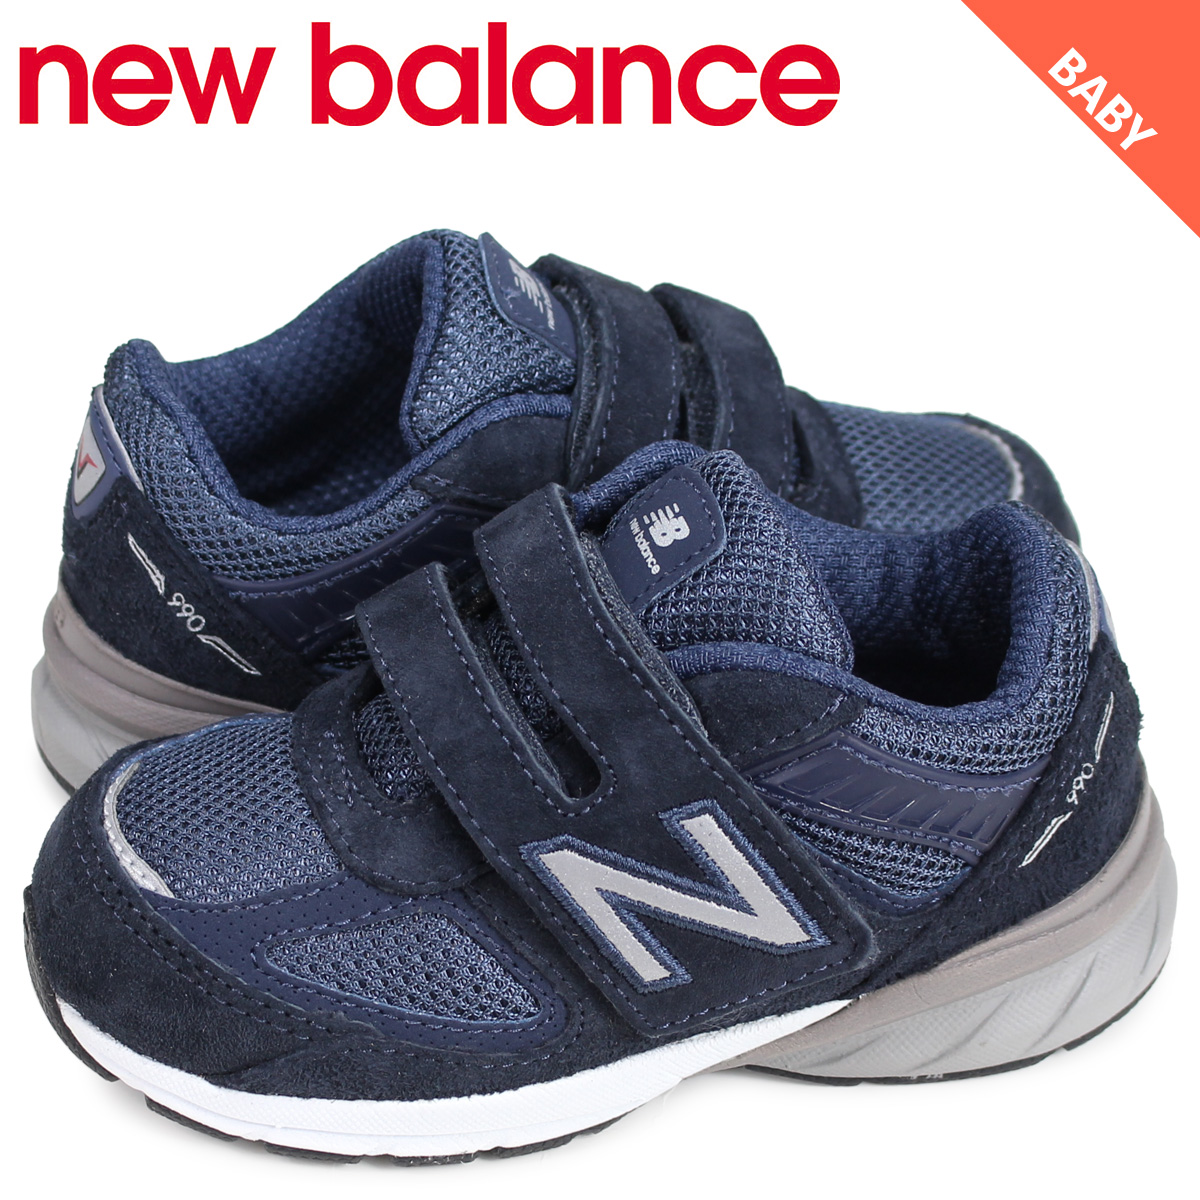 purchase cheap e3602 84d5a New Balance new balance 990 sneakers baby kids navy IV990NV5